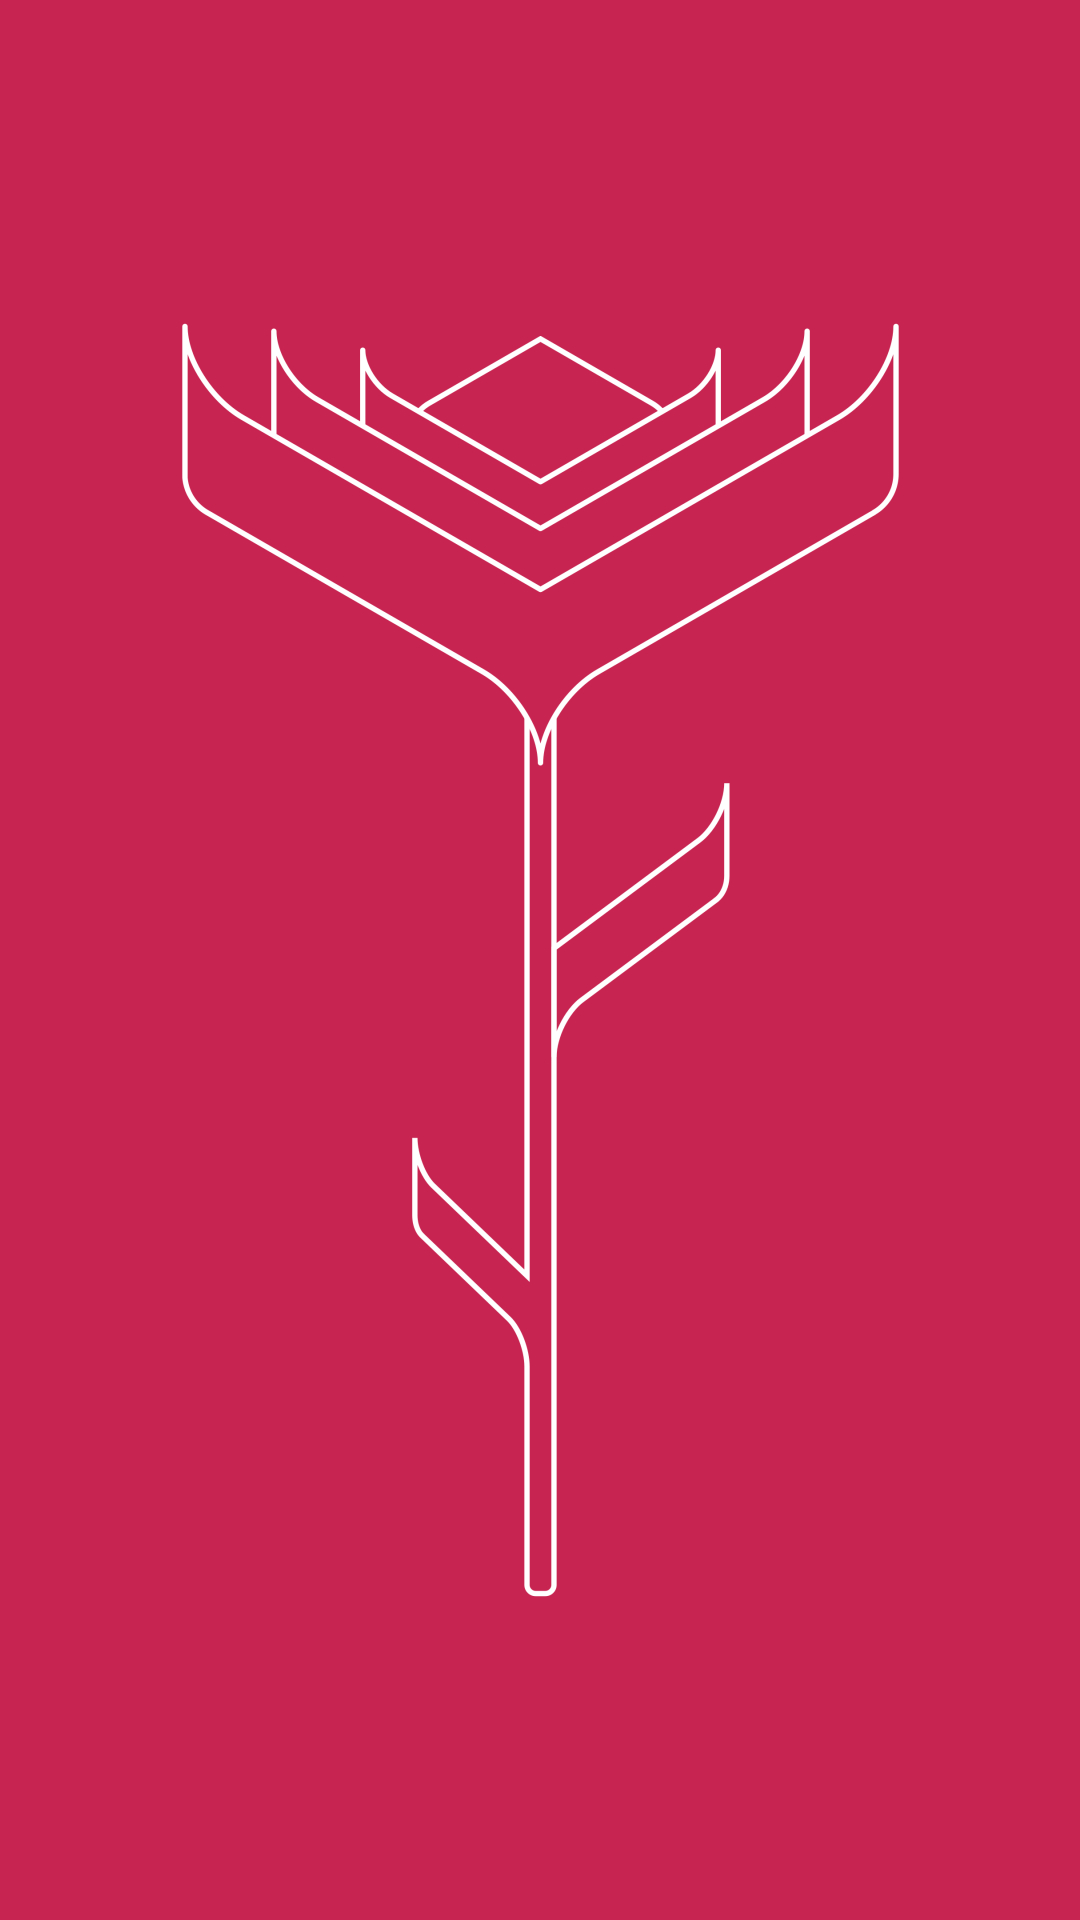 1080x1920 Pink Rose Minimalist Iphone 7, 6s, 6 Plus and ...